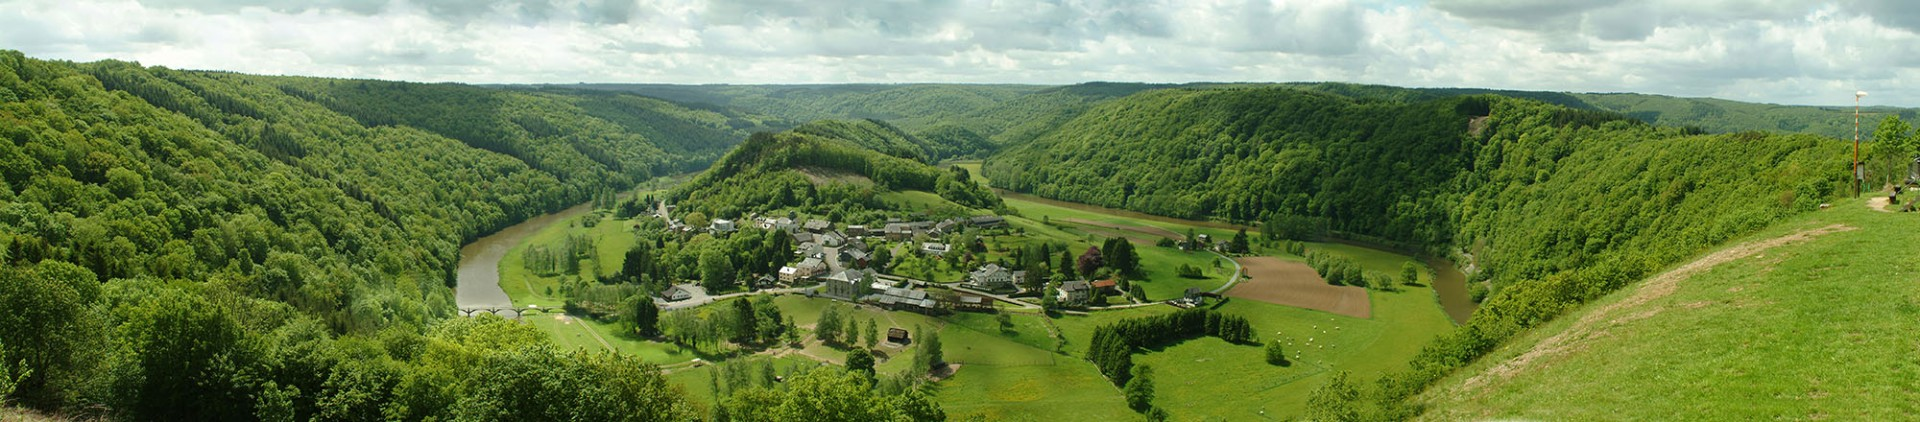 Belgian Luxembourg - Ardenne Incoming